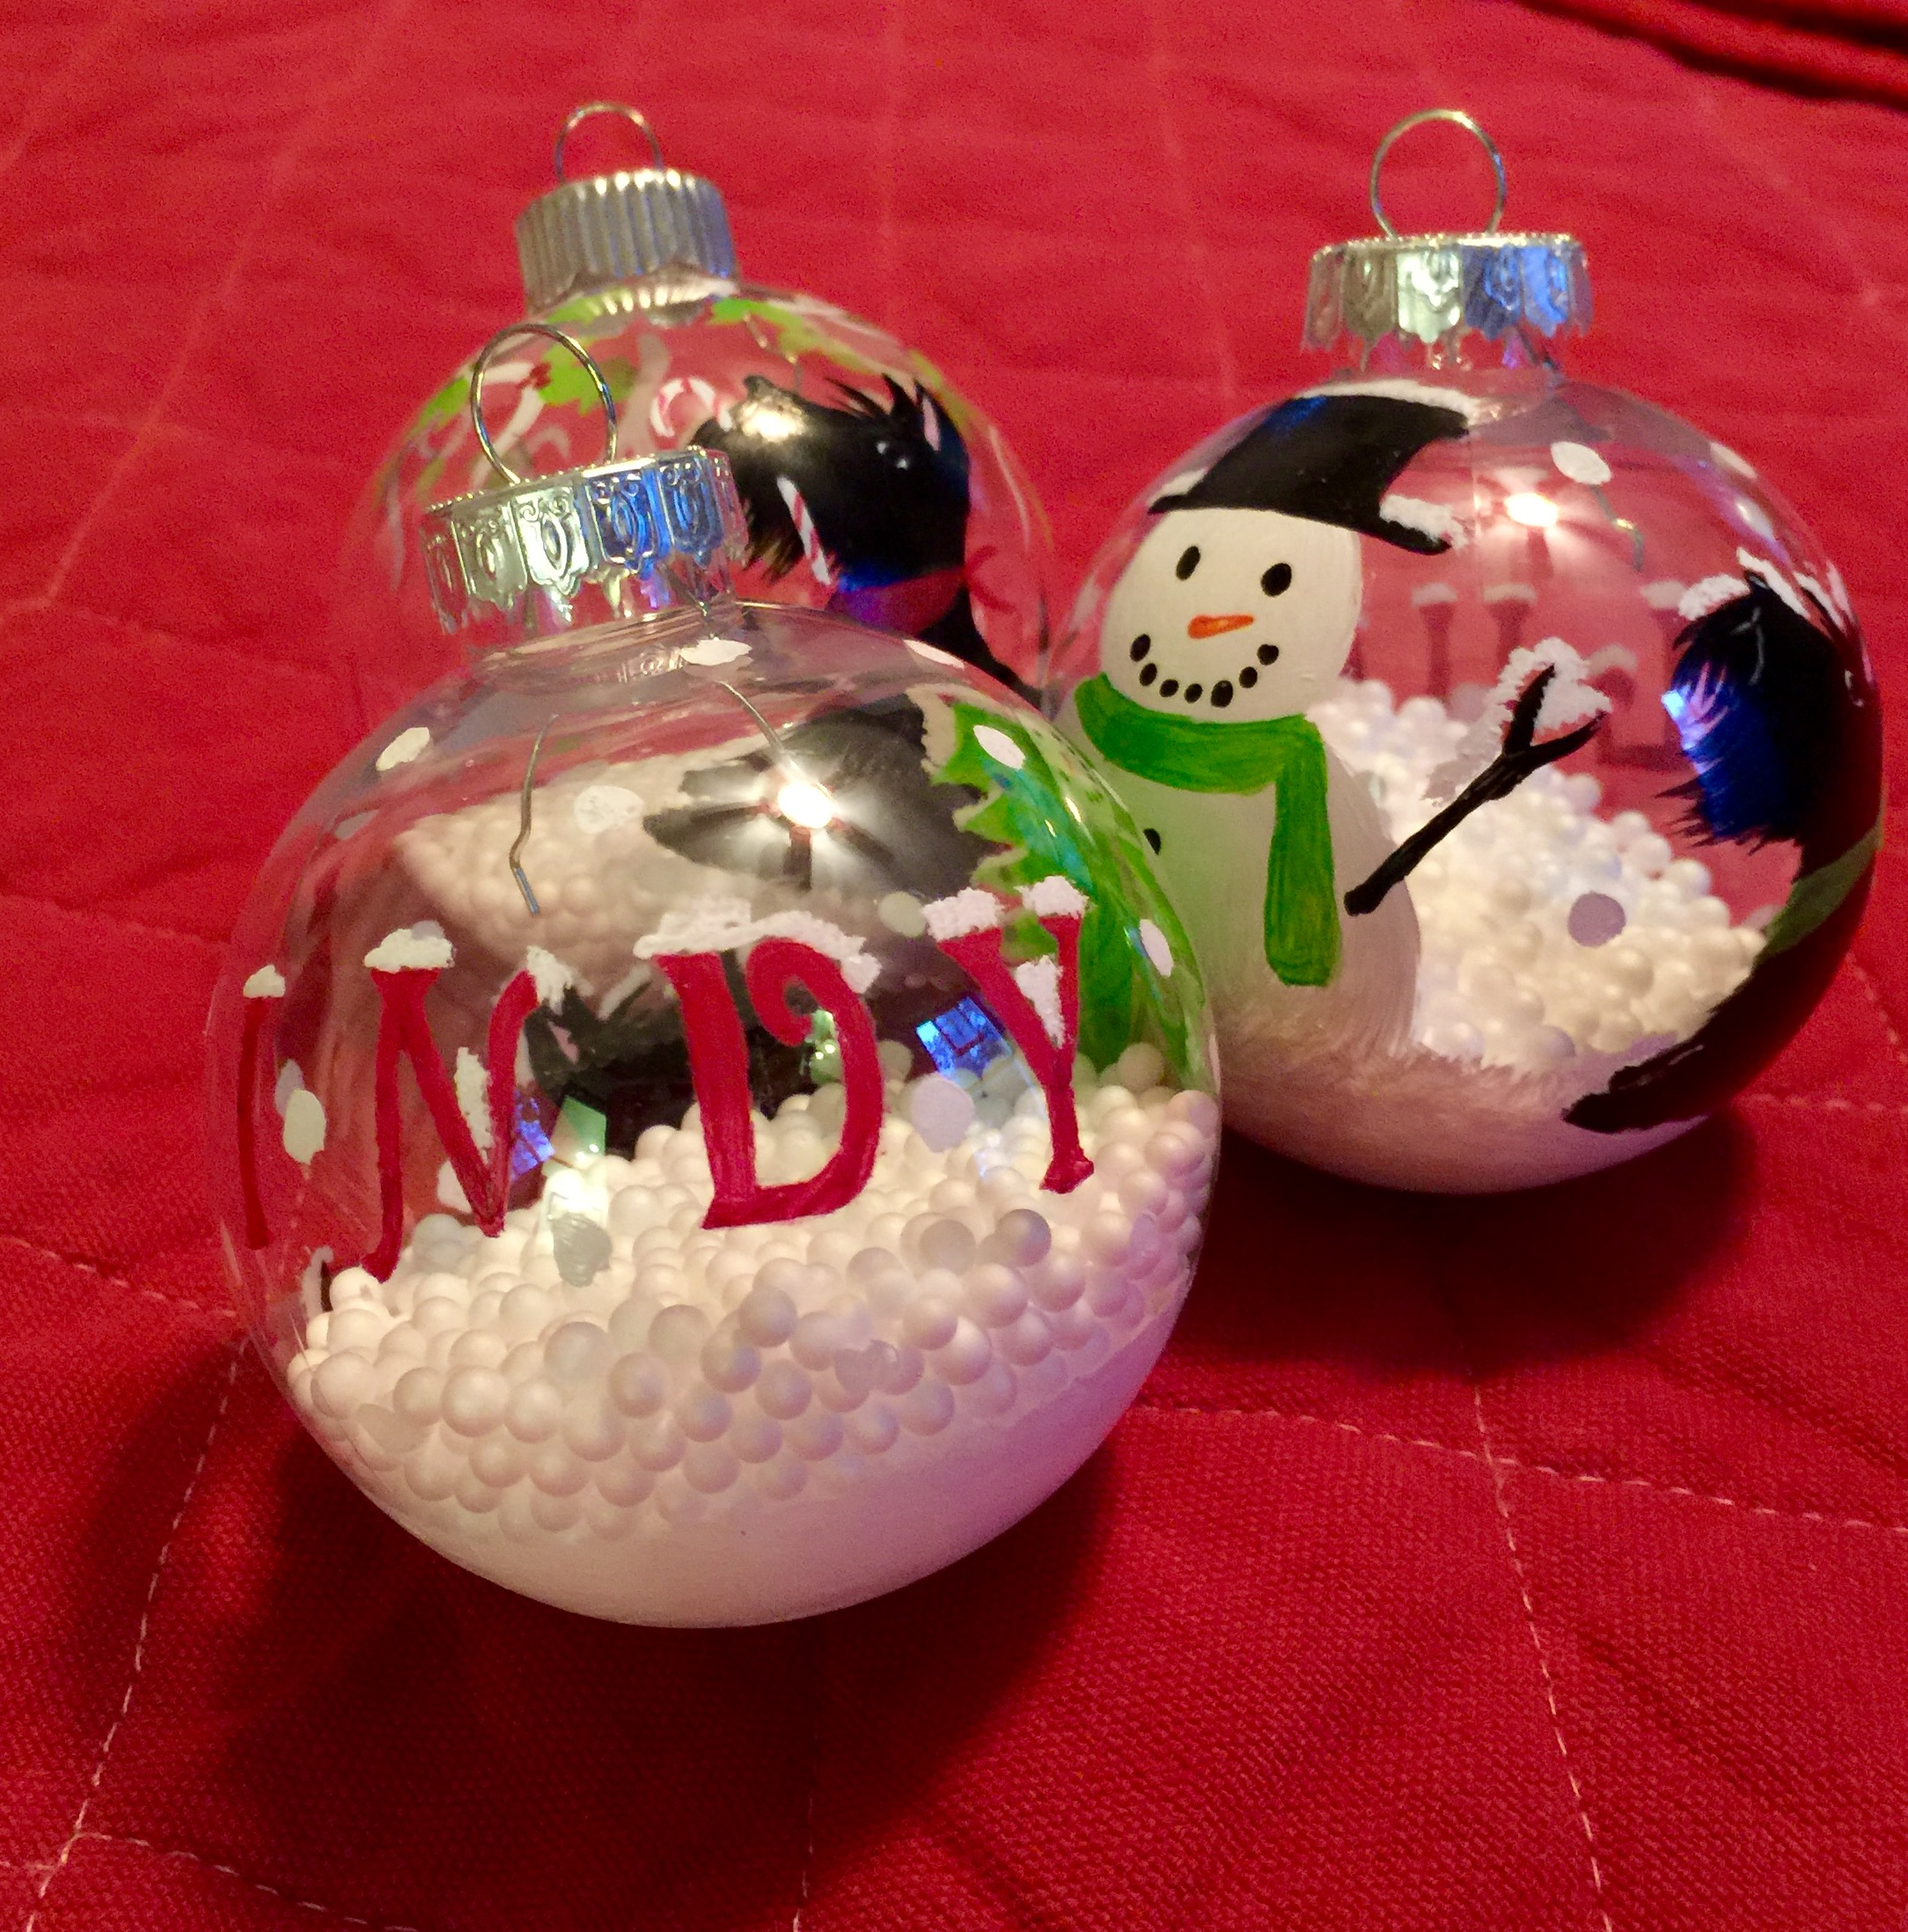 Ornaments with names on them - They Had Our Names On Them And Even A Special One For First Scottie Sophie